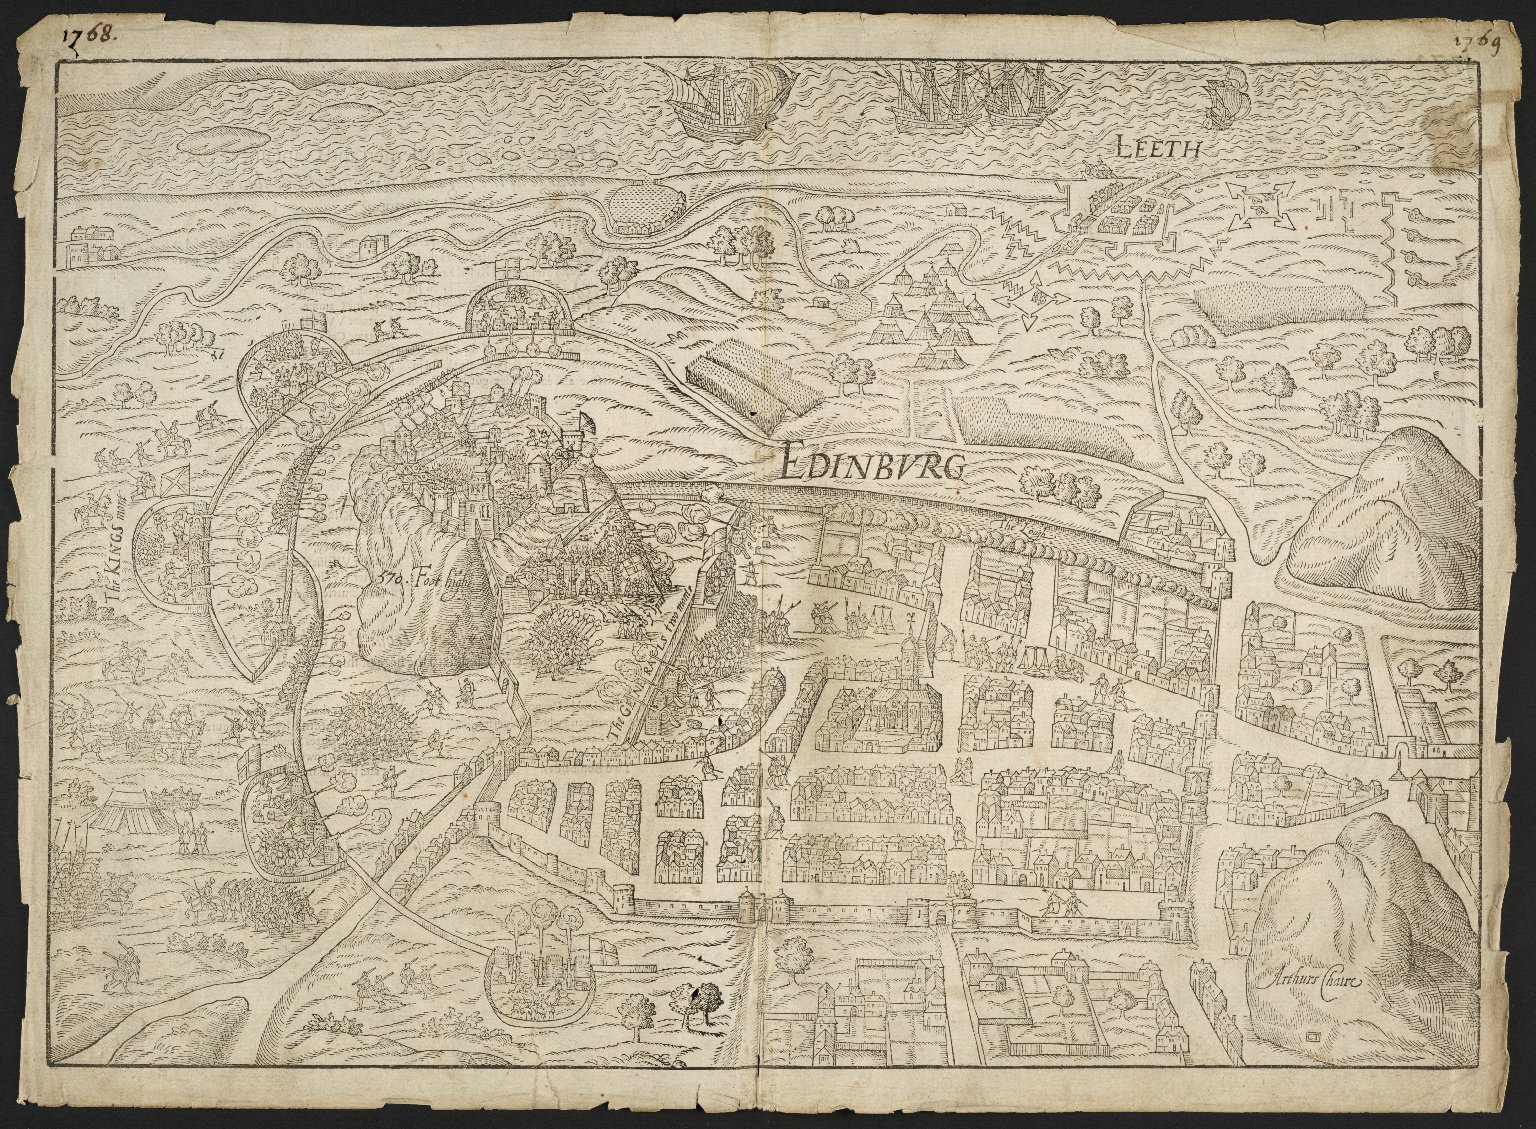 Edinburg : [the siege of Edinburgh Castle by English troops, 1573 ; Castle defended by Kirkcaldy of Grange on behalf of Mary Queen of Scots]. [1 of 2]